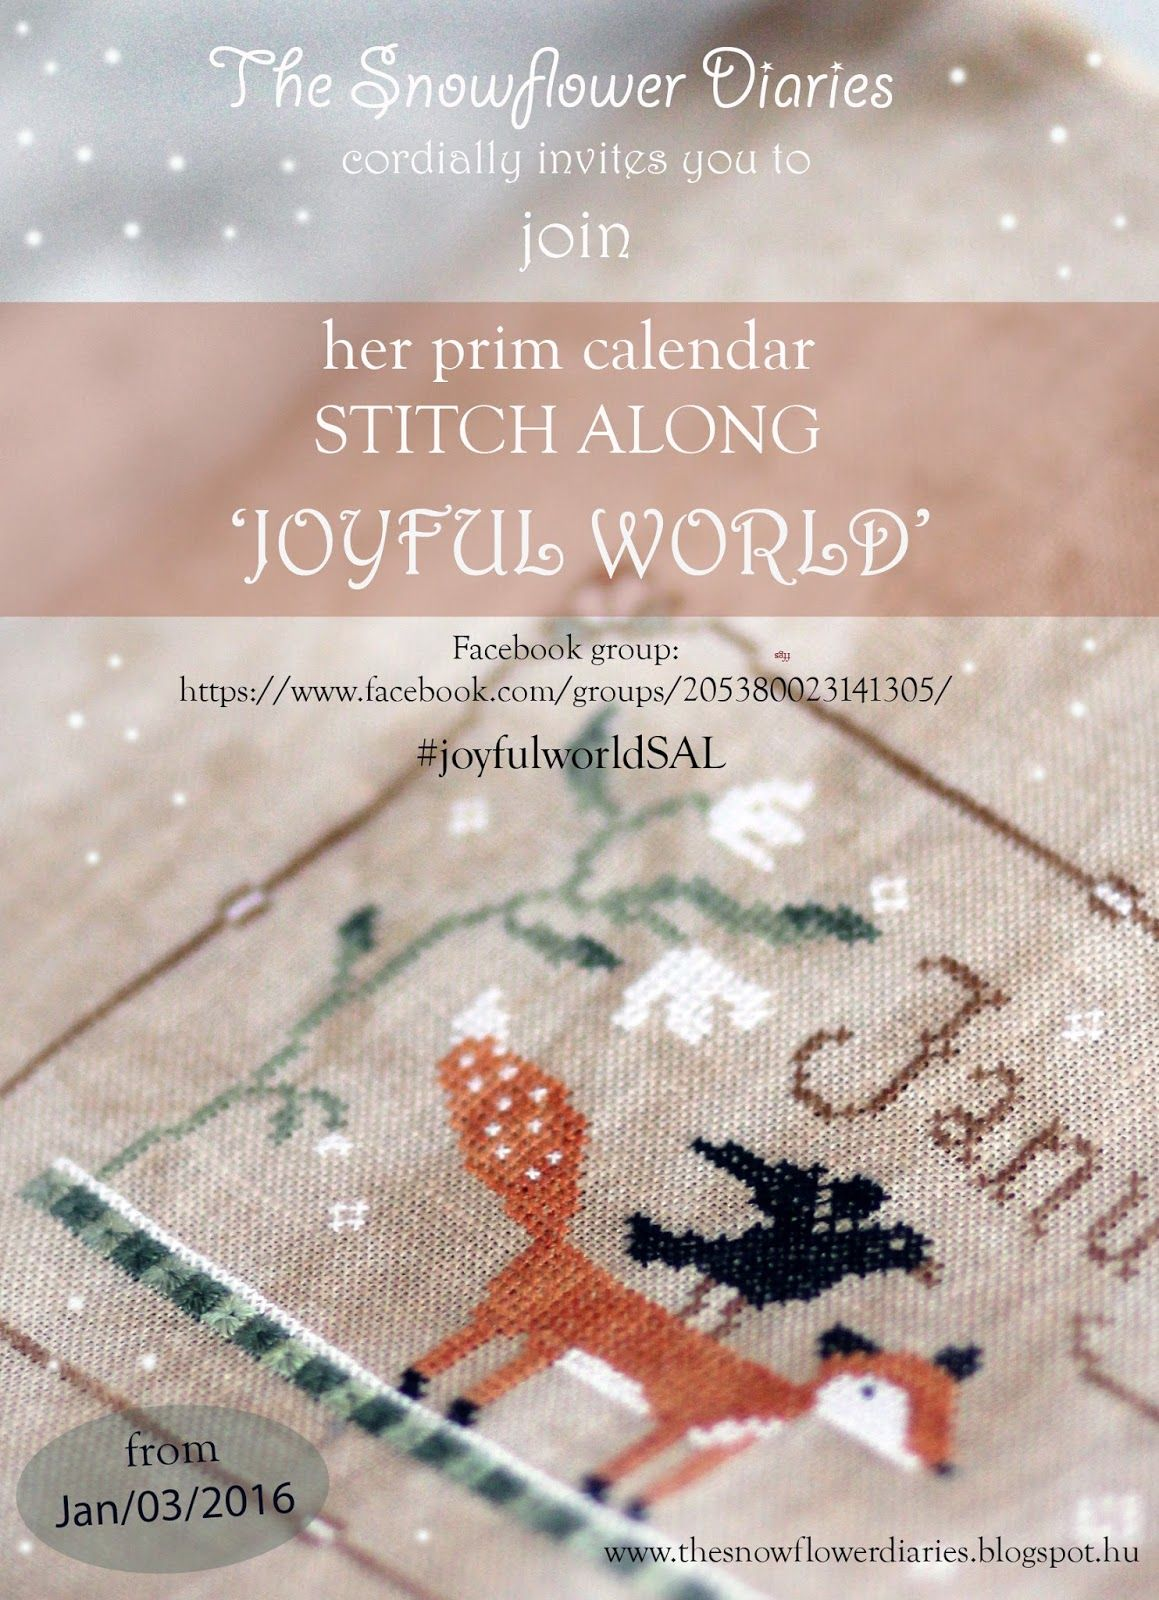 Dear Friends,      I am happy to invite you to my first stitch along!:-)      I have designed a primitive monthly calendar: JOYFUL WORL...